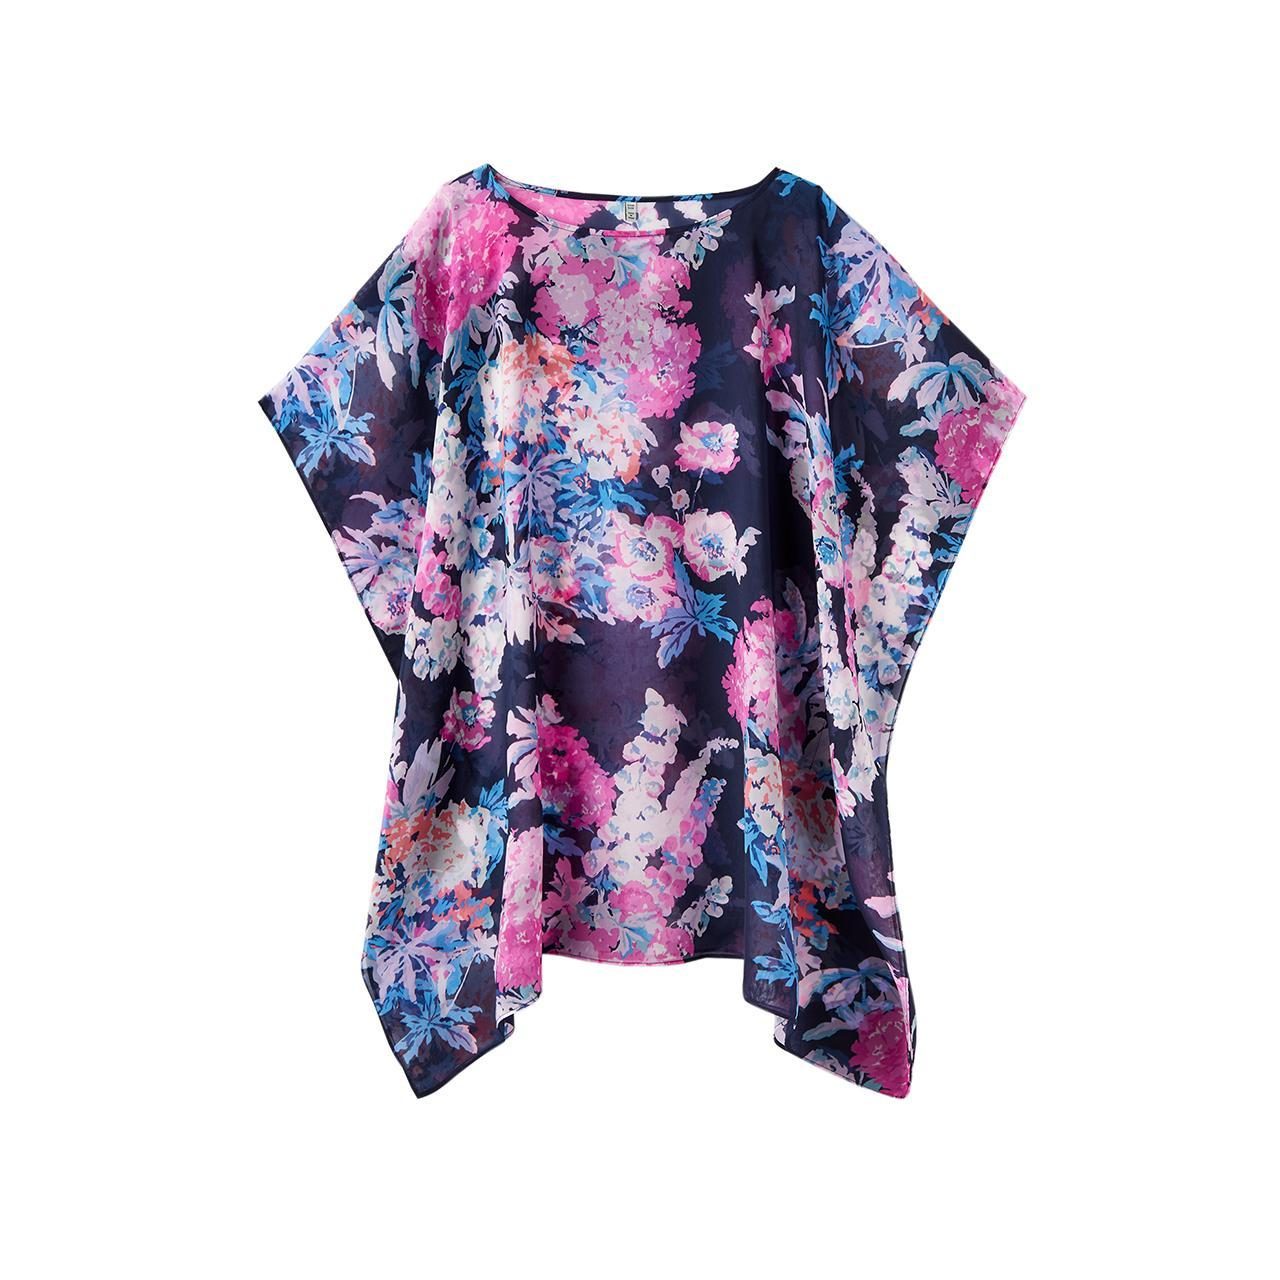 29c2238f758 Joules Rosanna Beach Cover Up | Dobbies